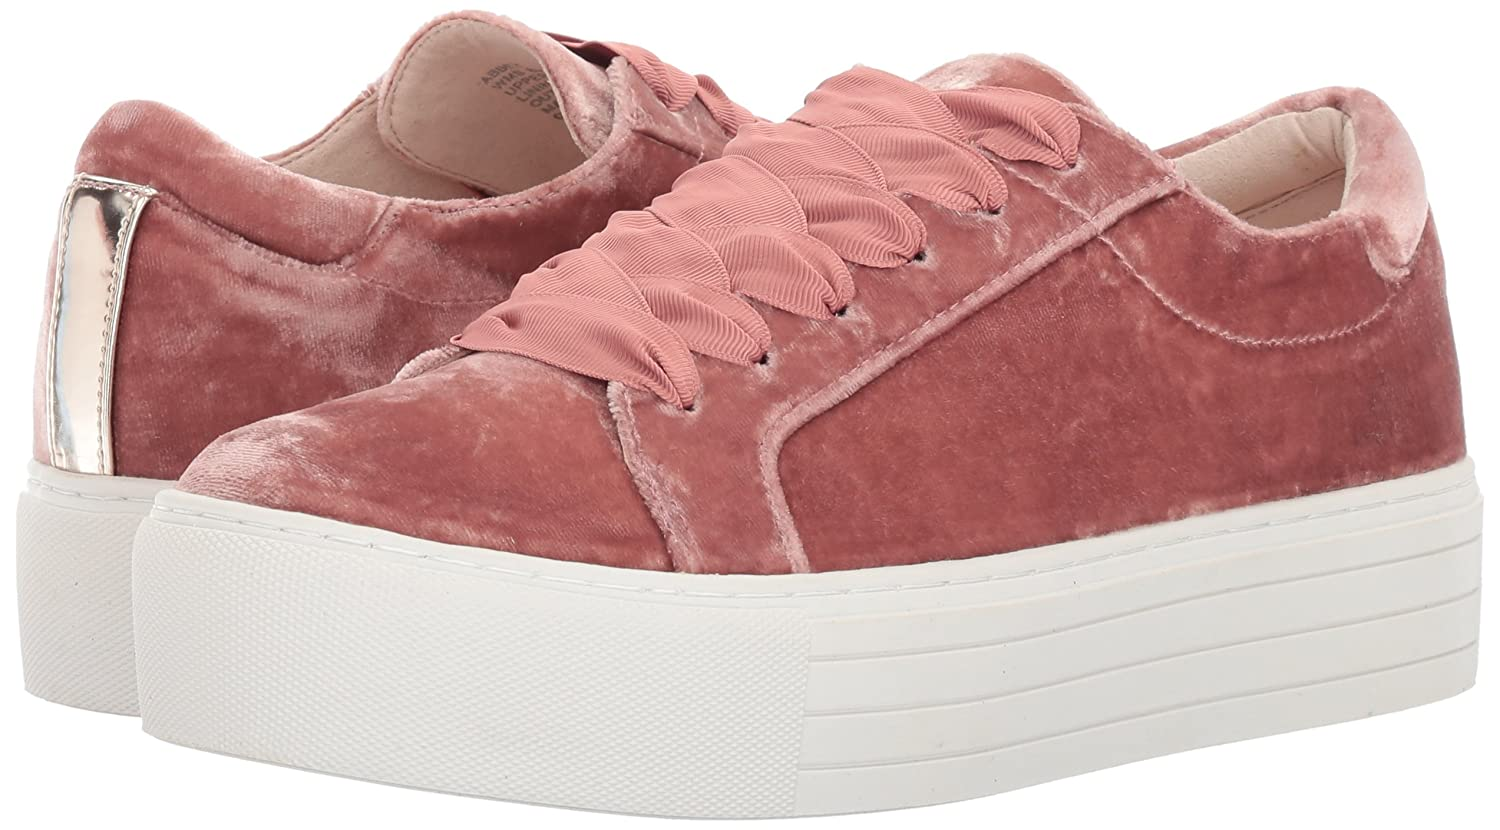 Kenneth Abbey Cole New York Women's Abbey Kenneth Platform Lace up Velvet Fashion Sneaker B071XY4SRZ 9.5 B(M) US|Blush 86aa6a